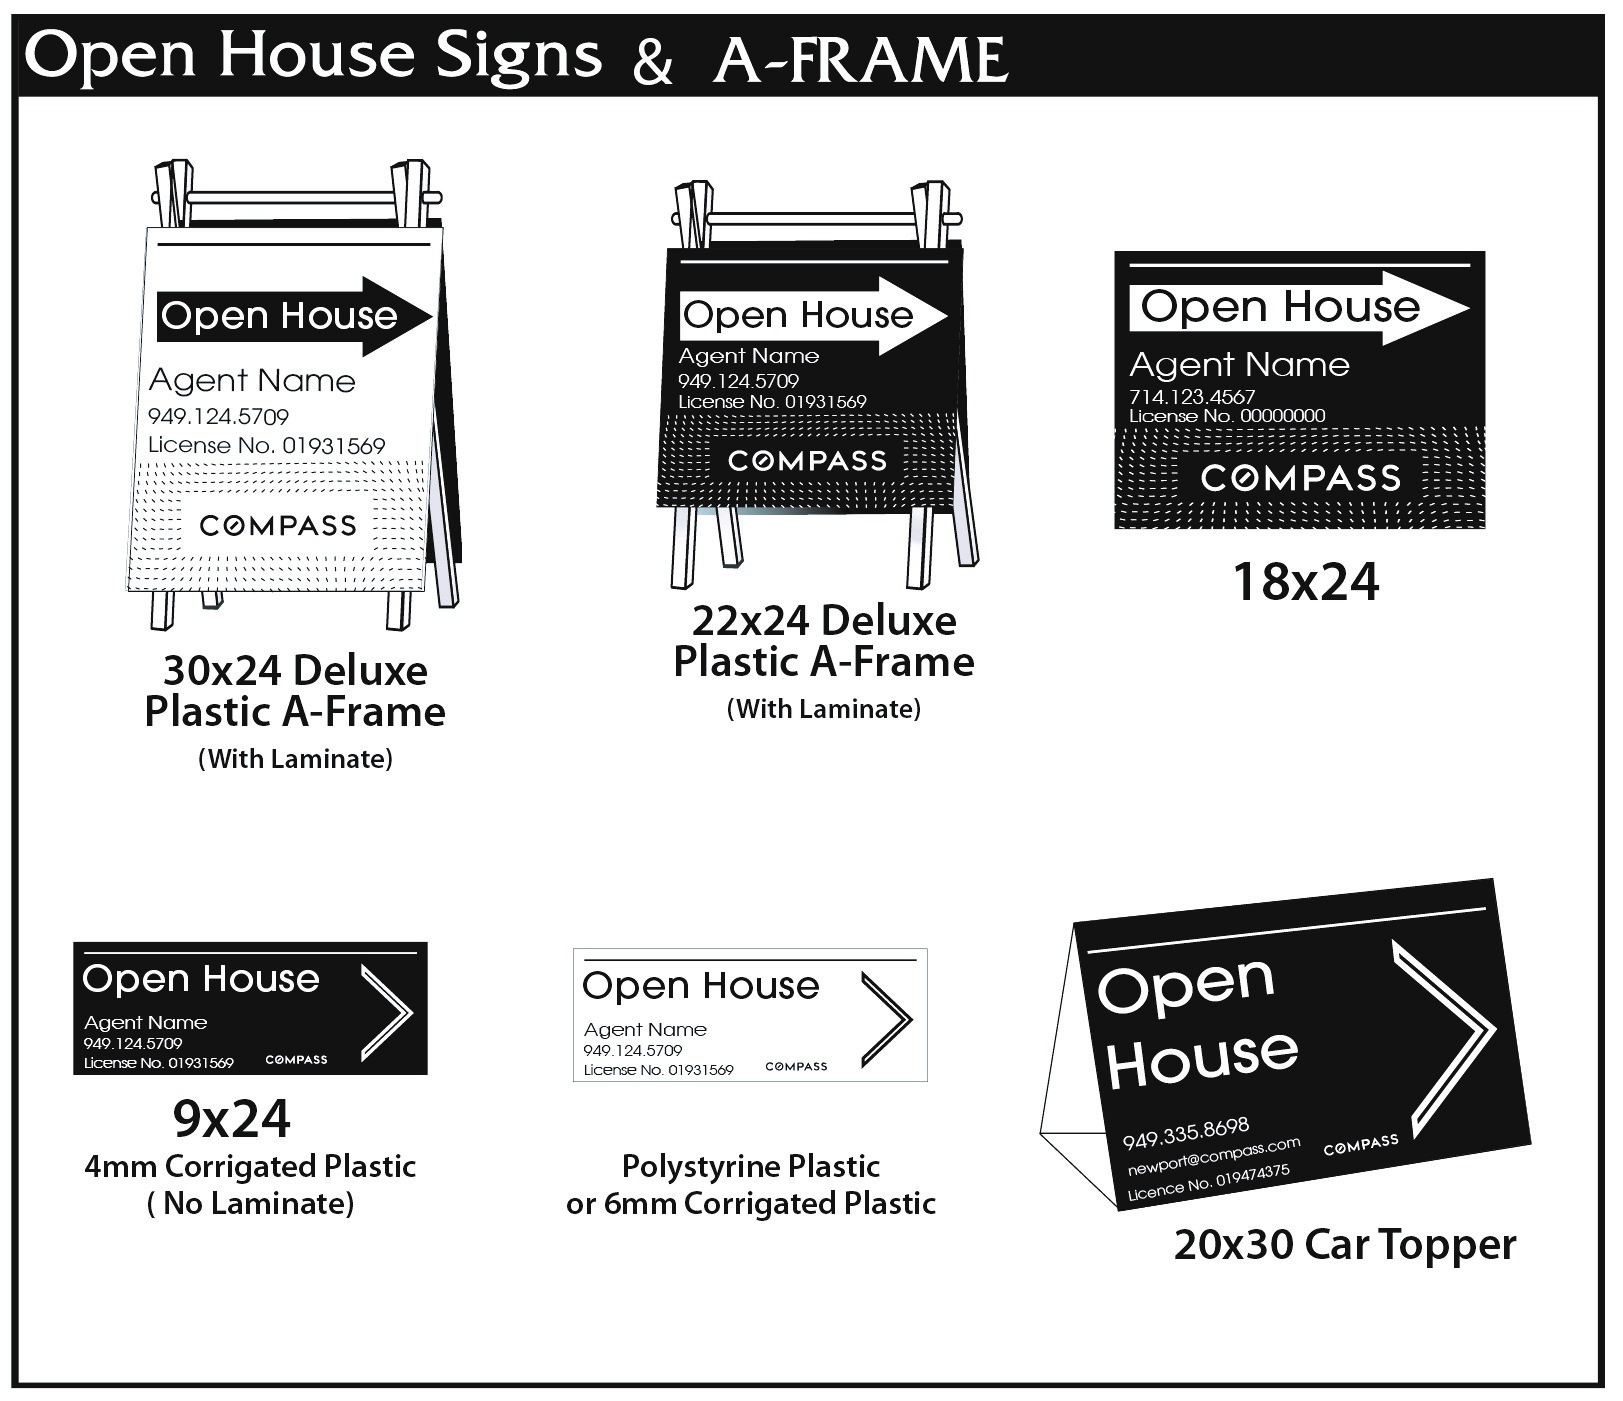 Compass Realty Signs - Real Estate Signs - Open House Signage - For ...